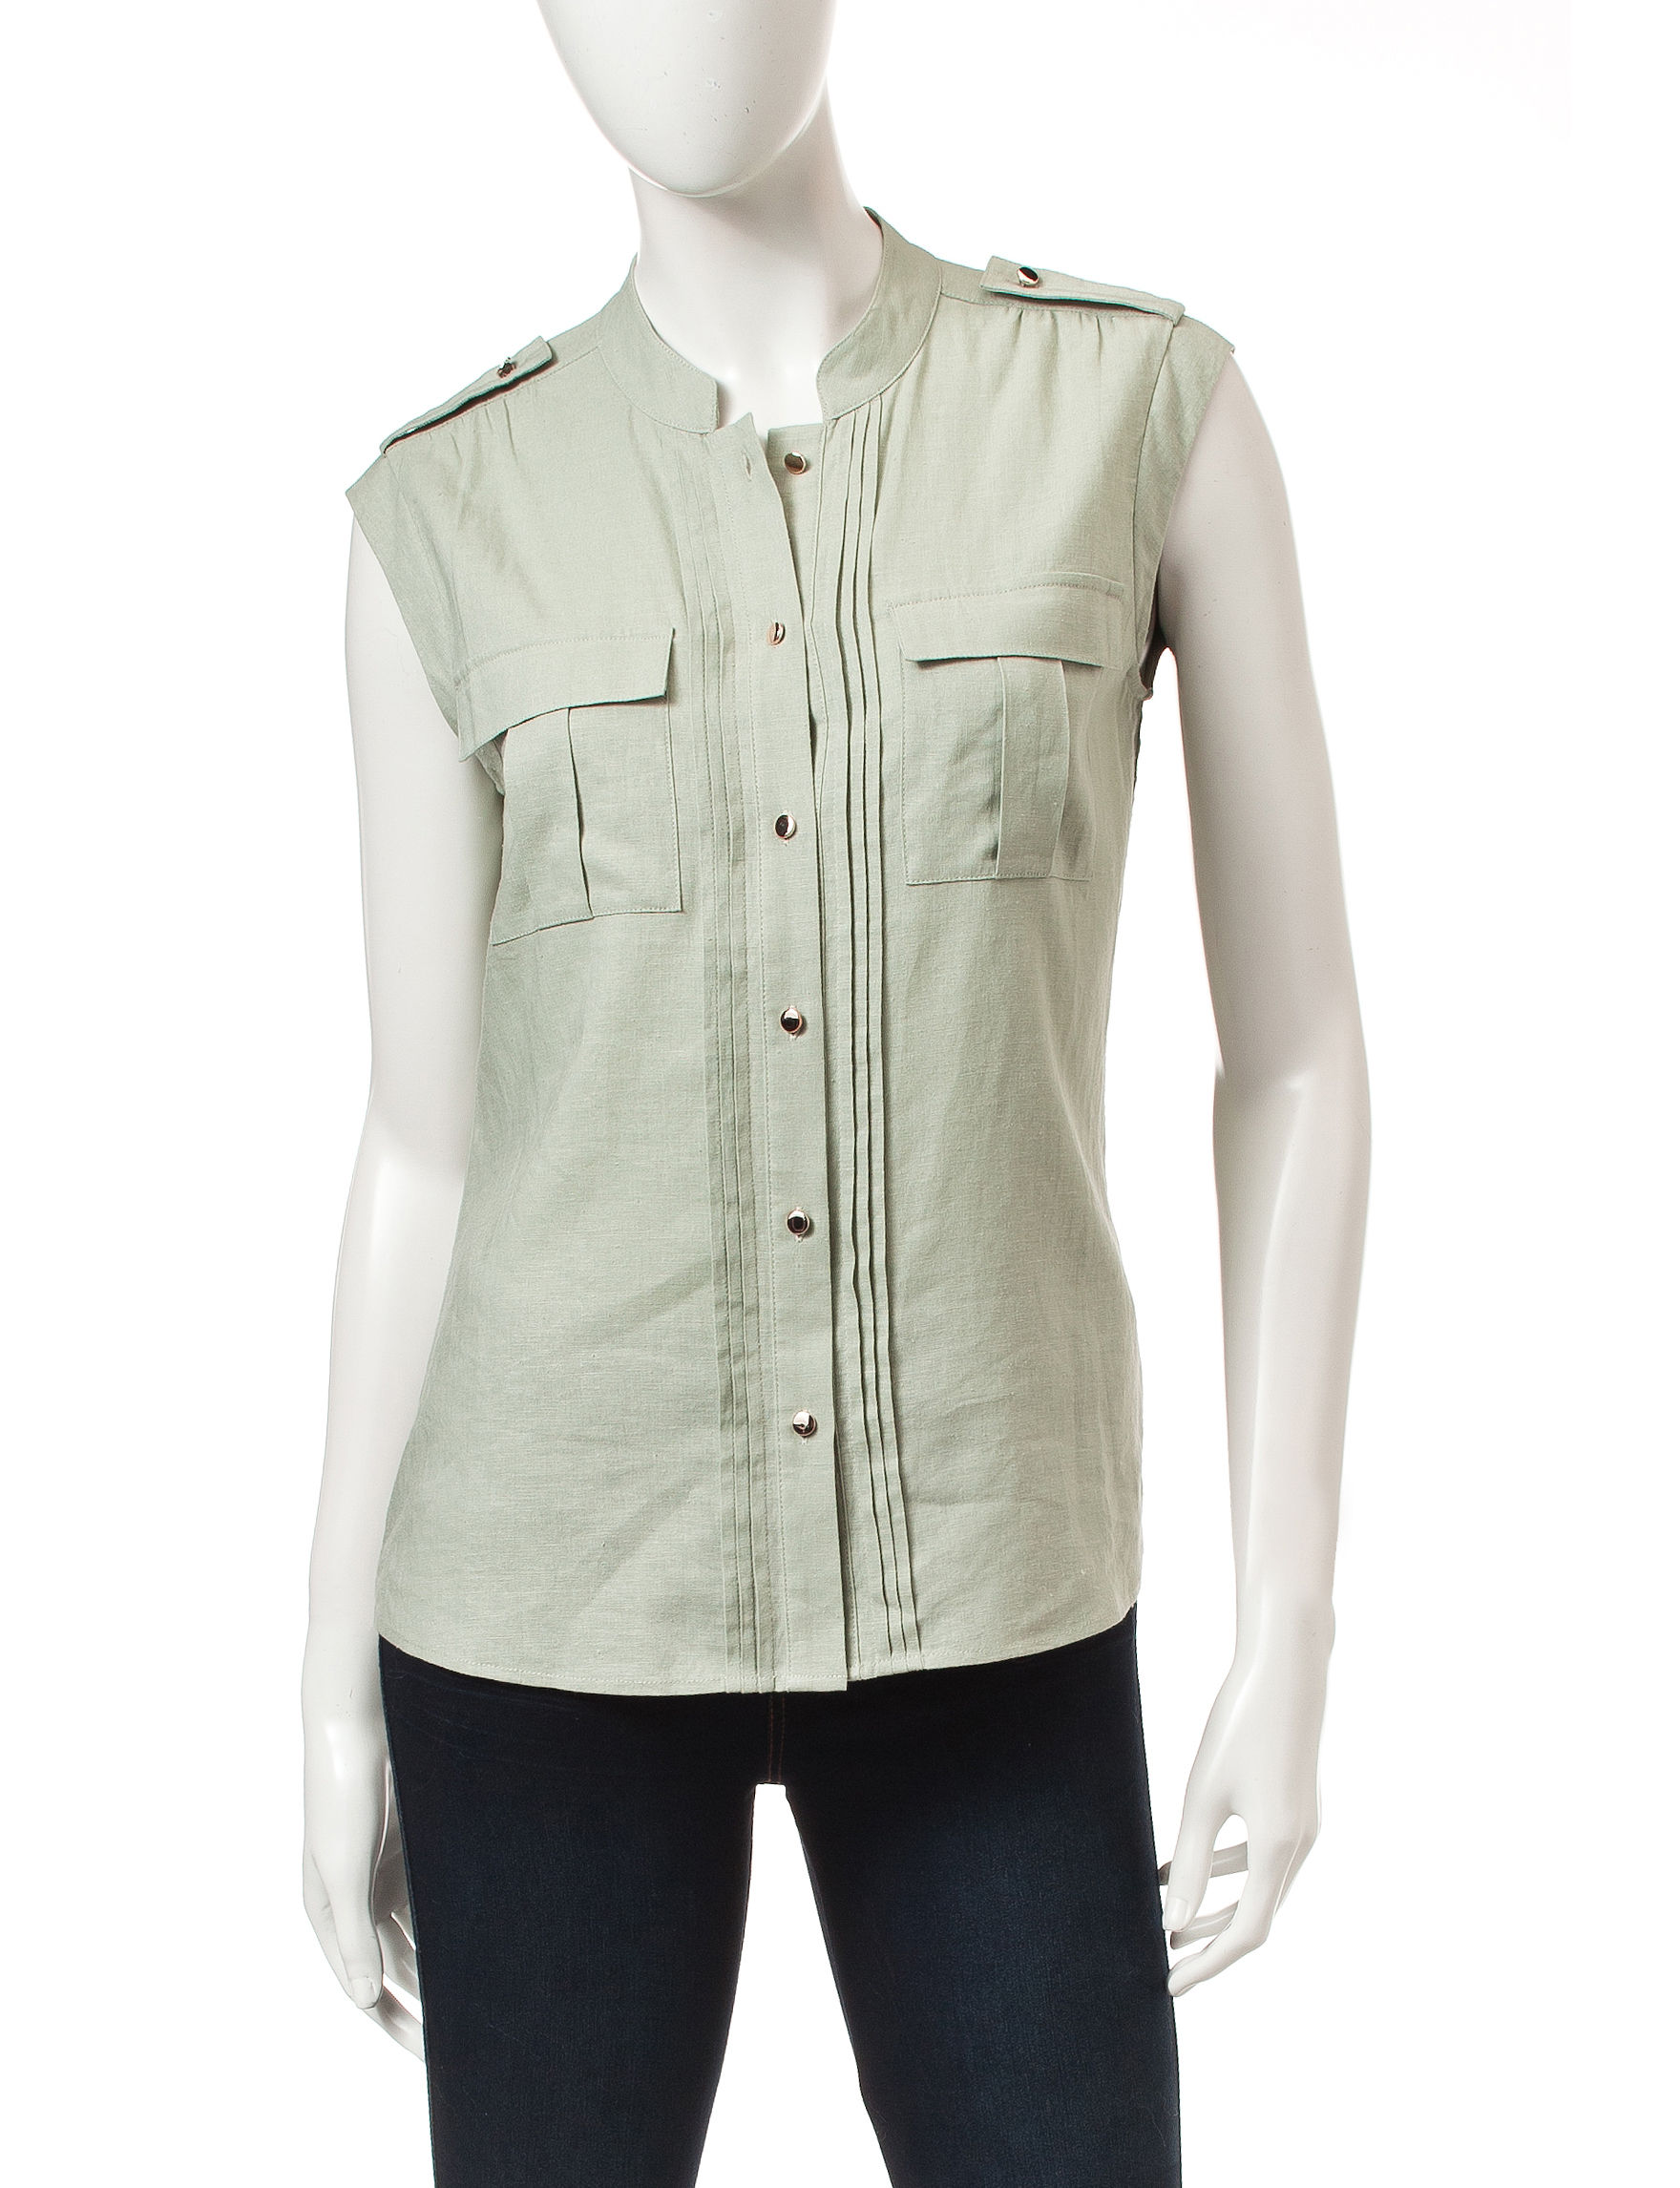 Nine West Jeans Green Shirts & Blouses